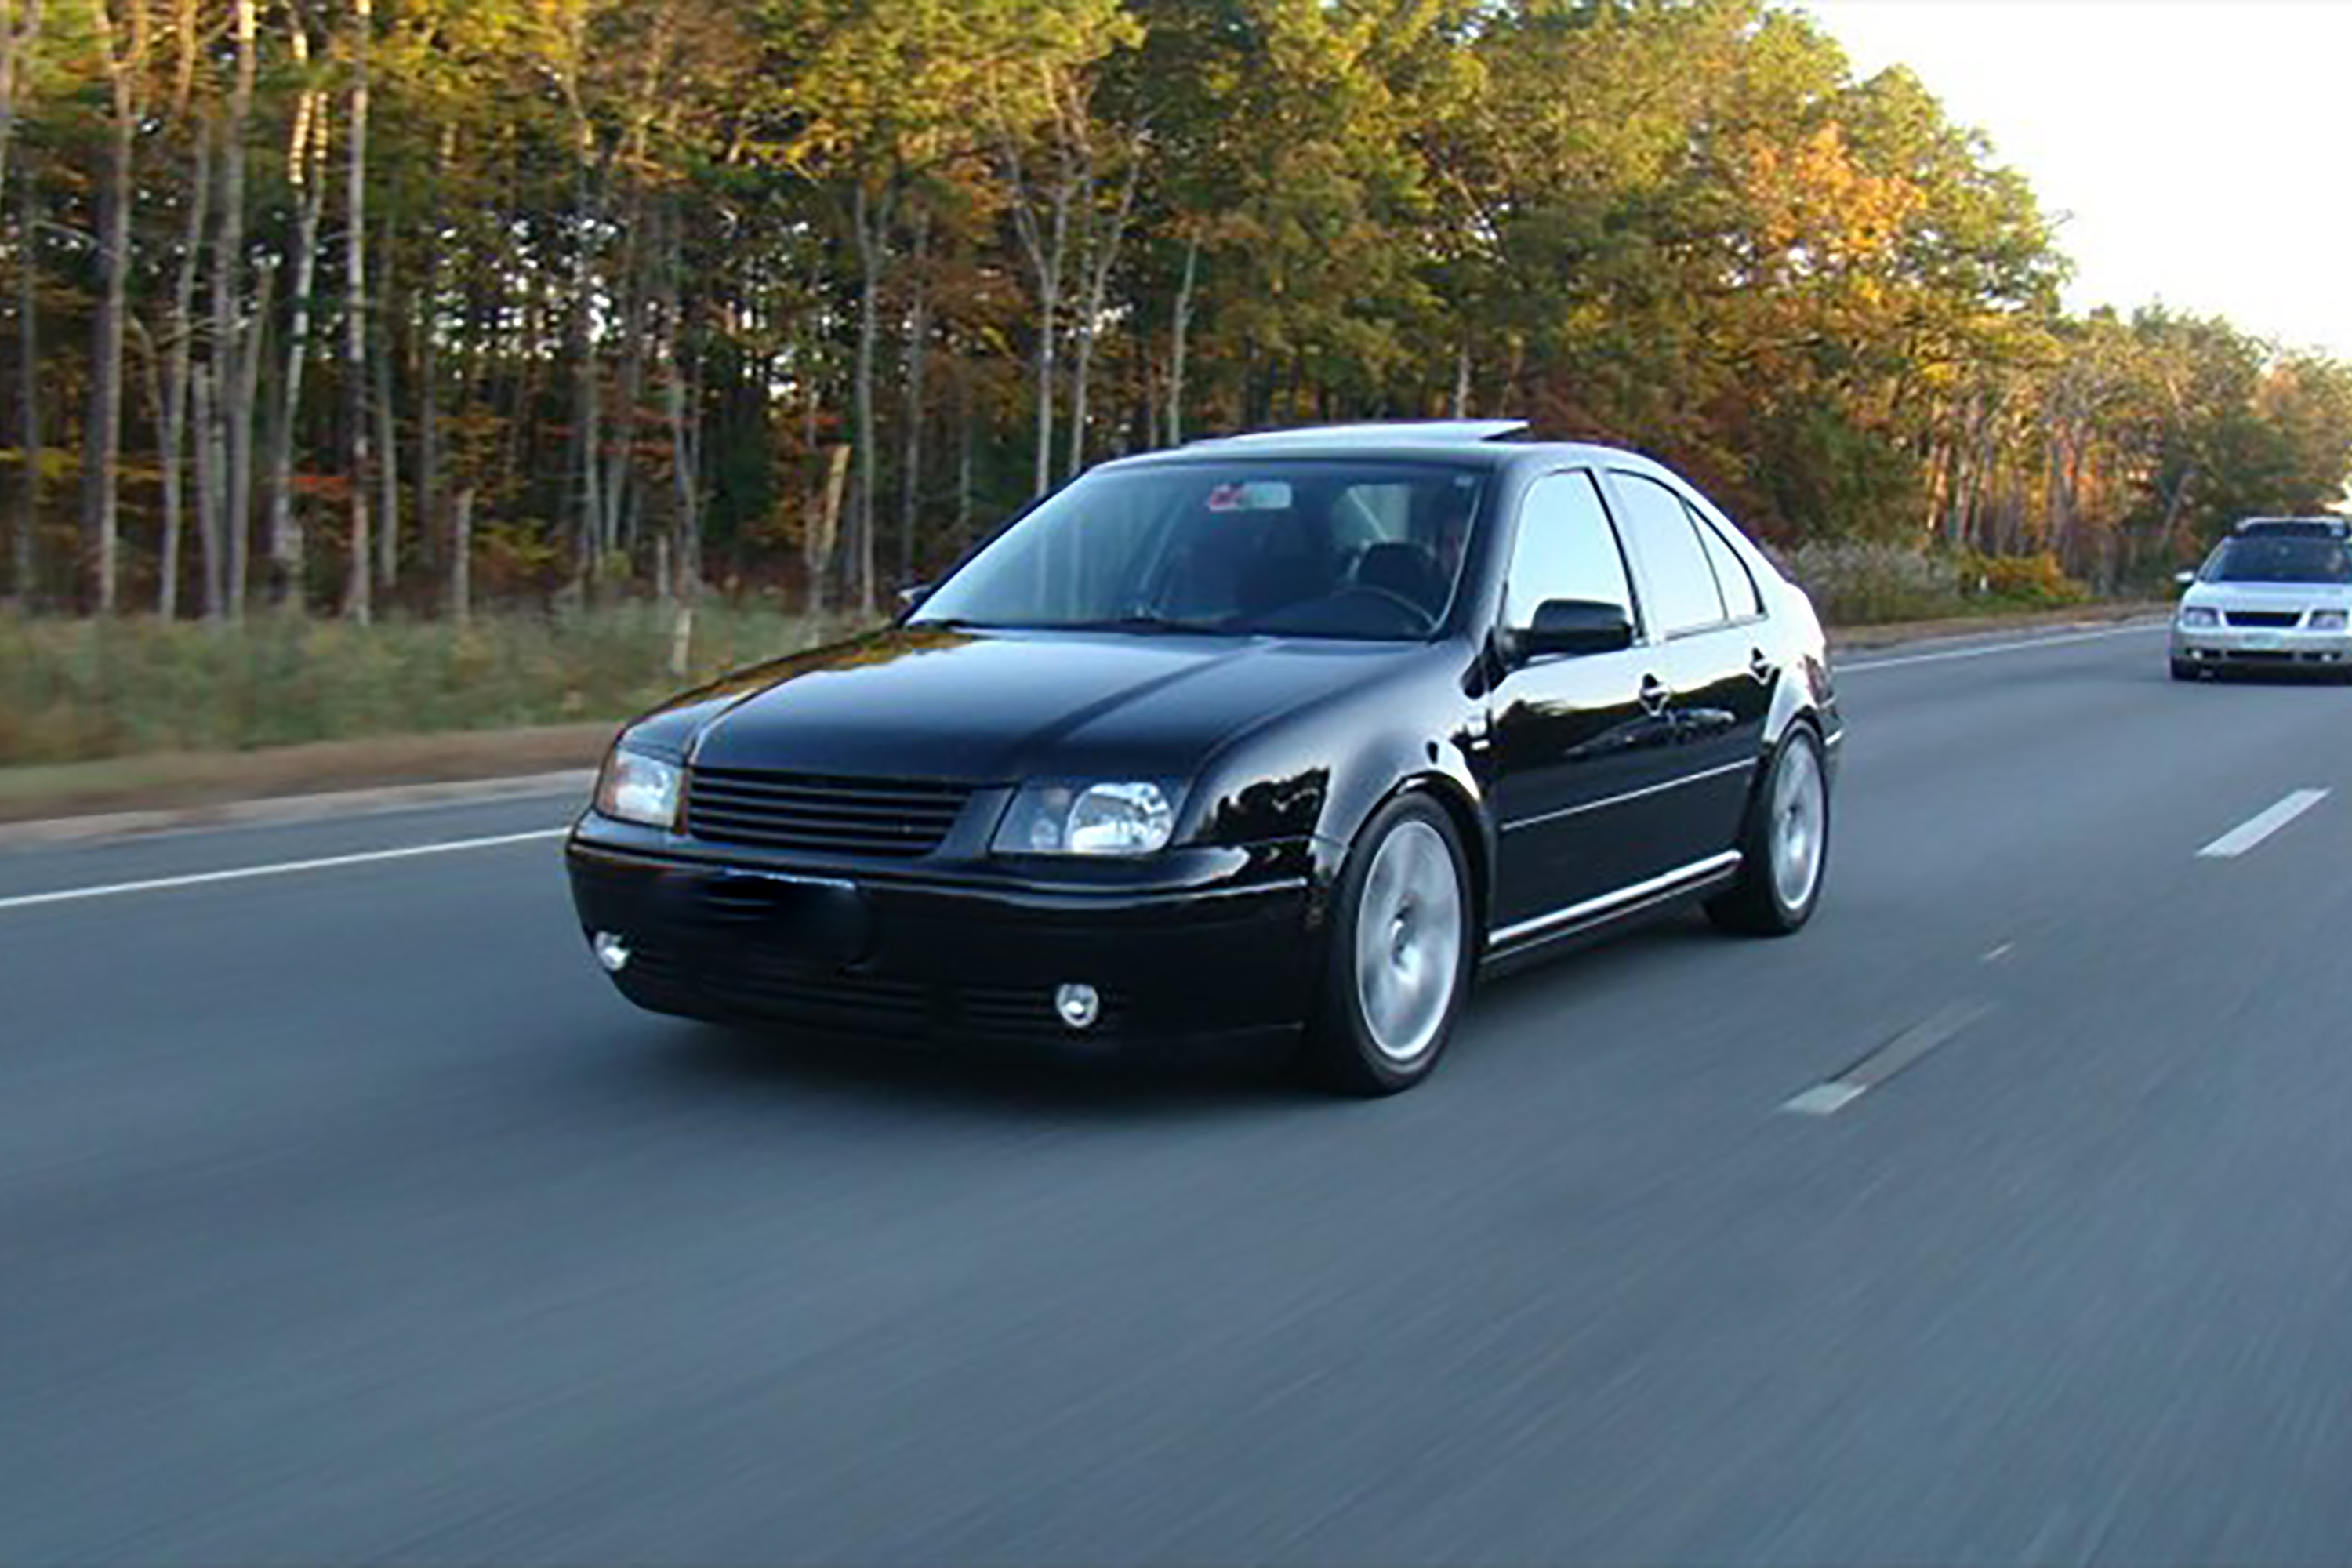 Difference between jetta gl jetta gls it still runs your the turbo gls can reach 0 60 mph in 79 seconds it earns 23 mpg in city driving and 29 mpg on the highway sciox Image collections